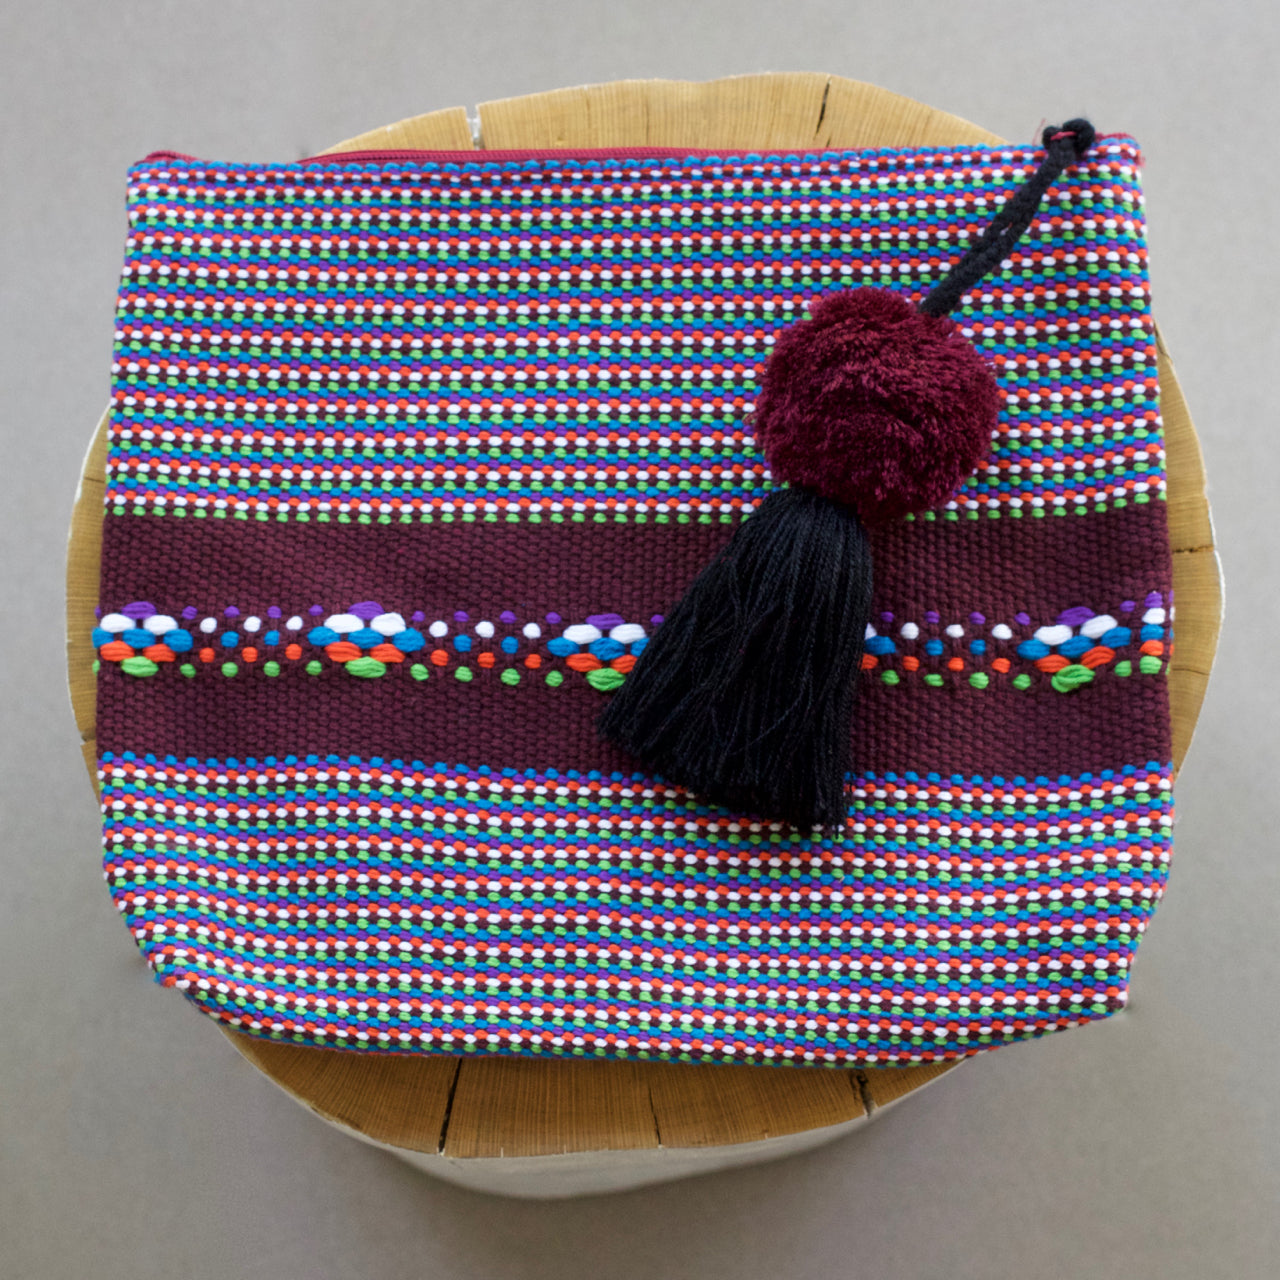 Jalieza Striped Clutch 15  Clutch Burgundy - Cielo Collective handmade Mexico Guatemala